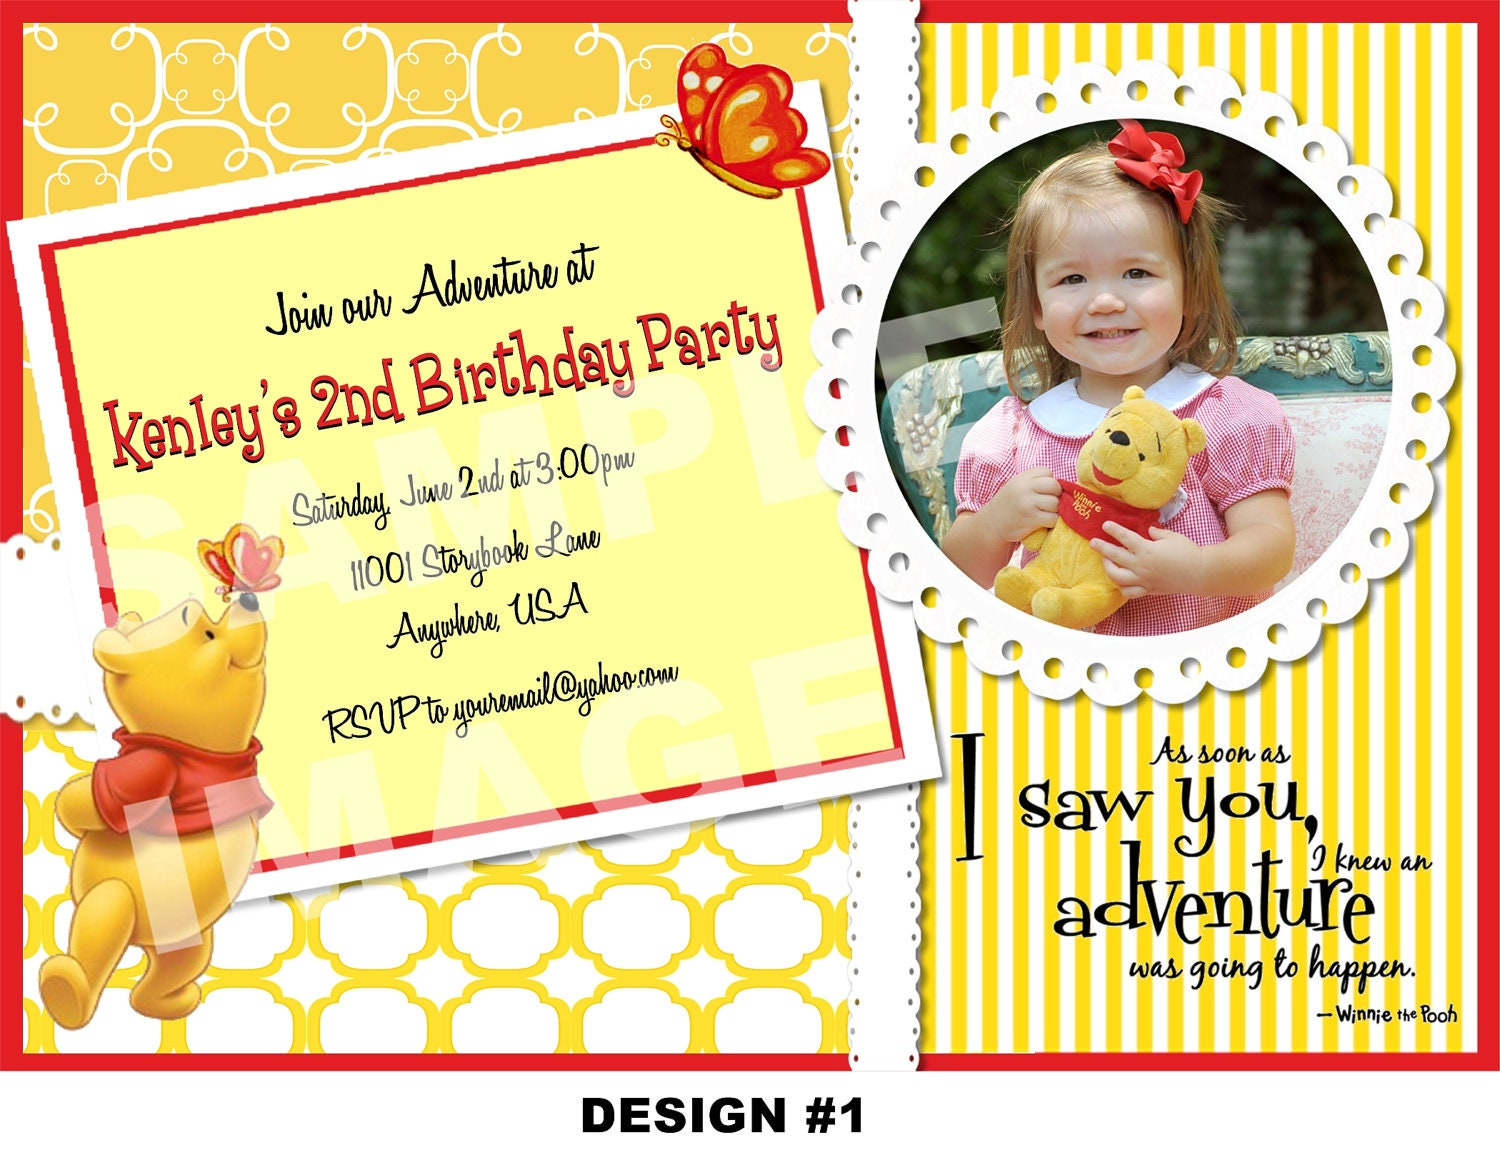 Winnie The Pooh St Birthday Invitation Templates Images - Birthday invitation templates winnie pooh